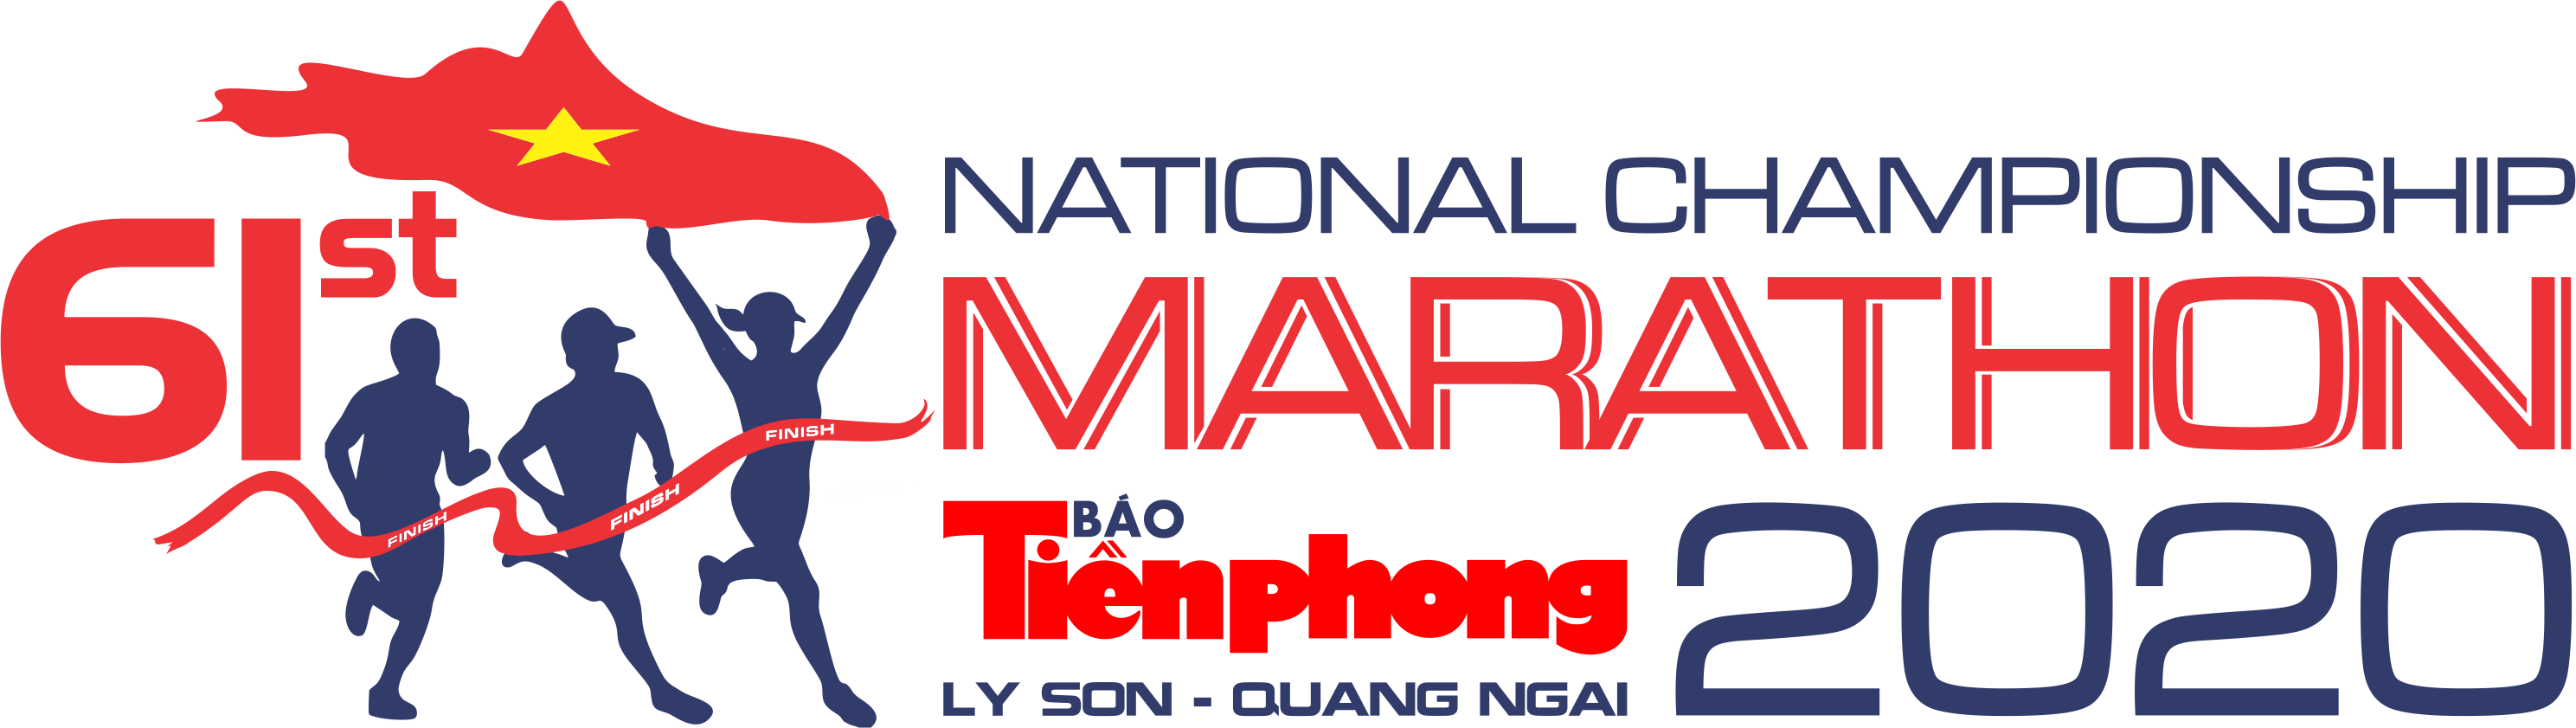 The 61st Tien Phong Marathon national championship 2020